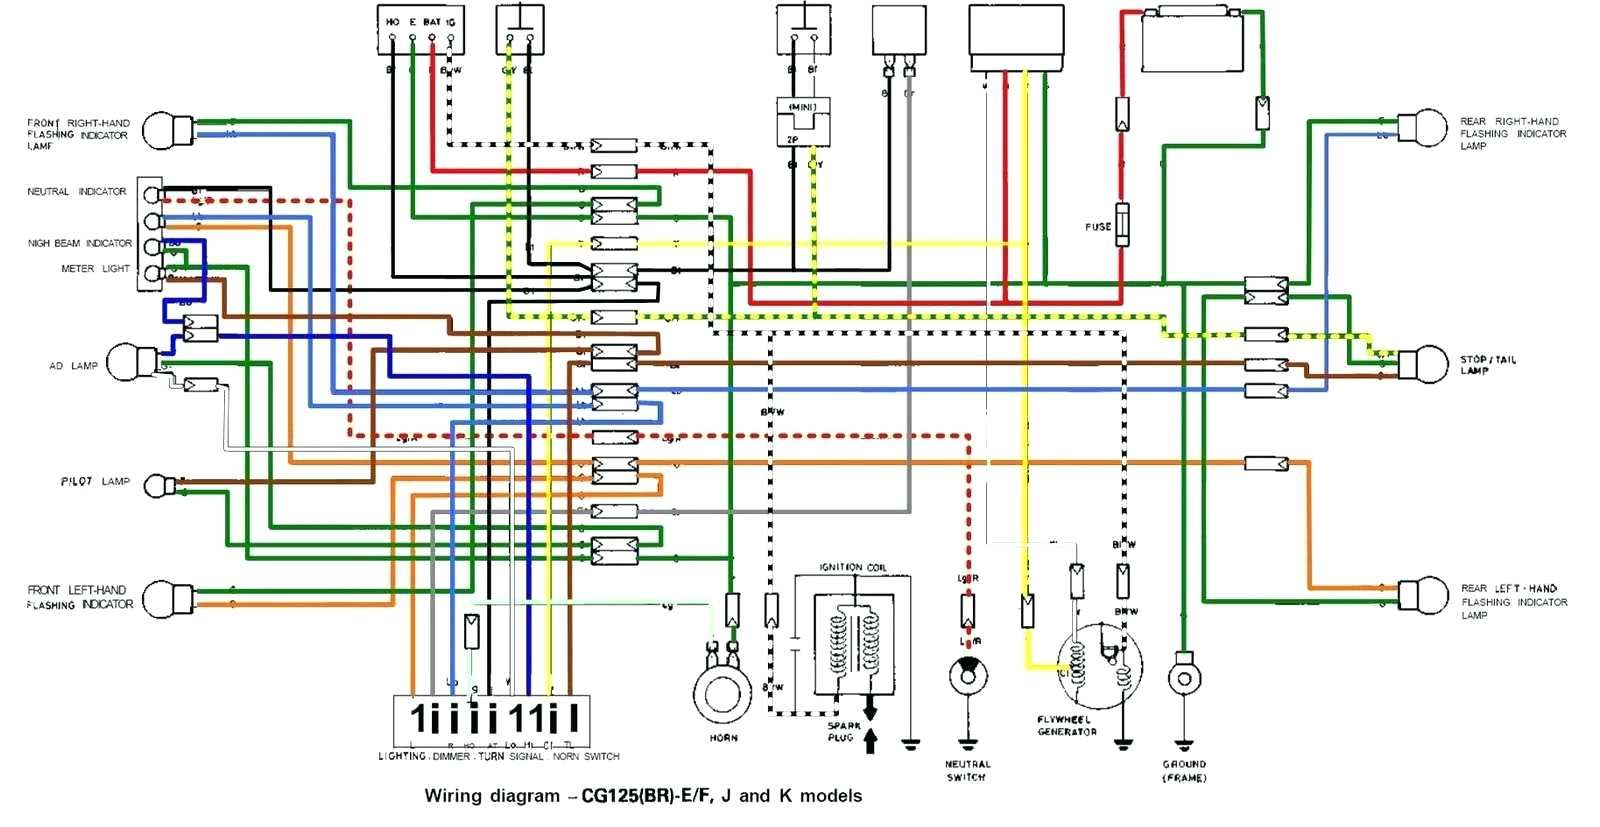 hight resolution of honda wave 110 wiring diagram wiring diagram today